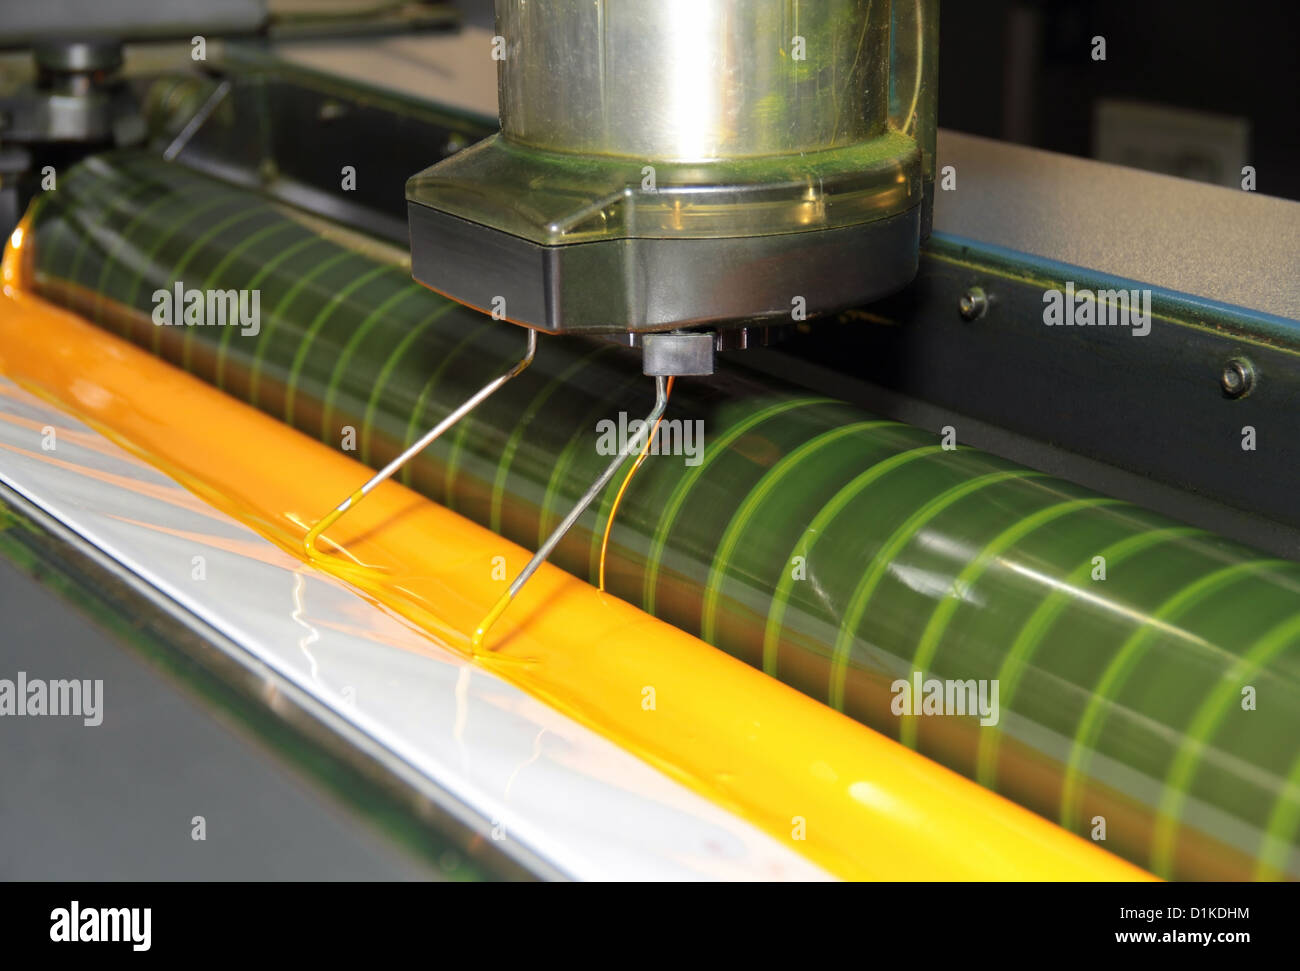 color deck detail of a offset printing machine - Stock Image